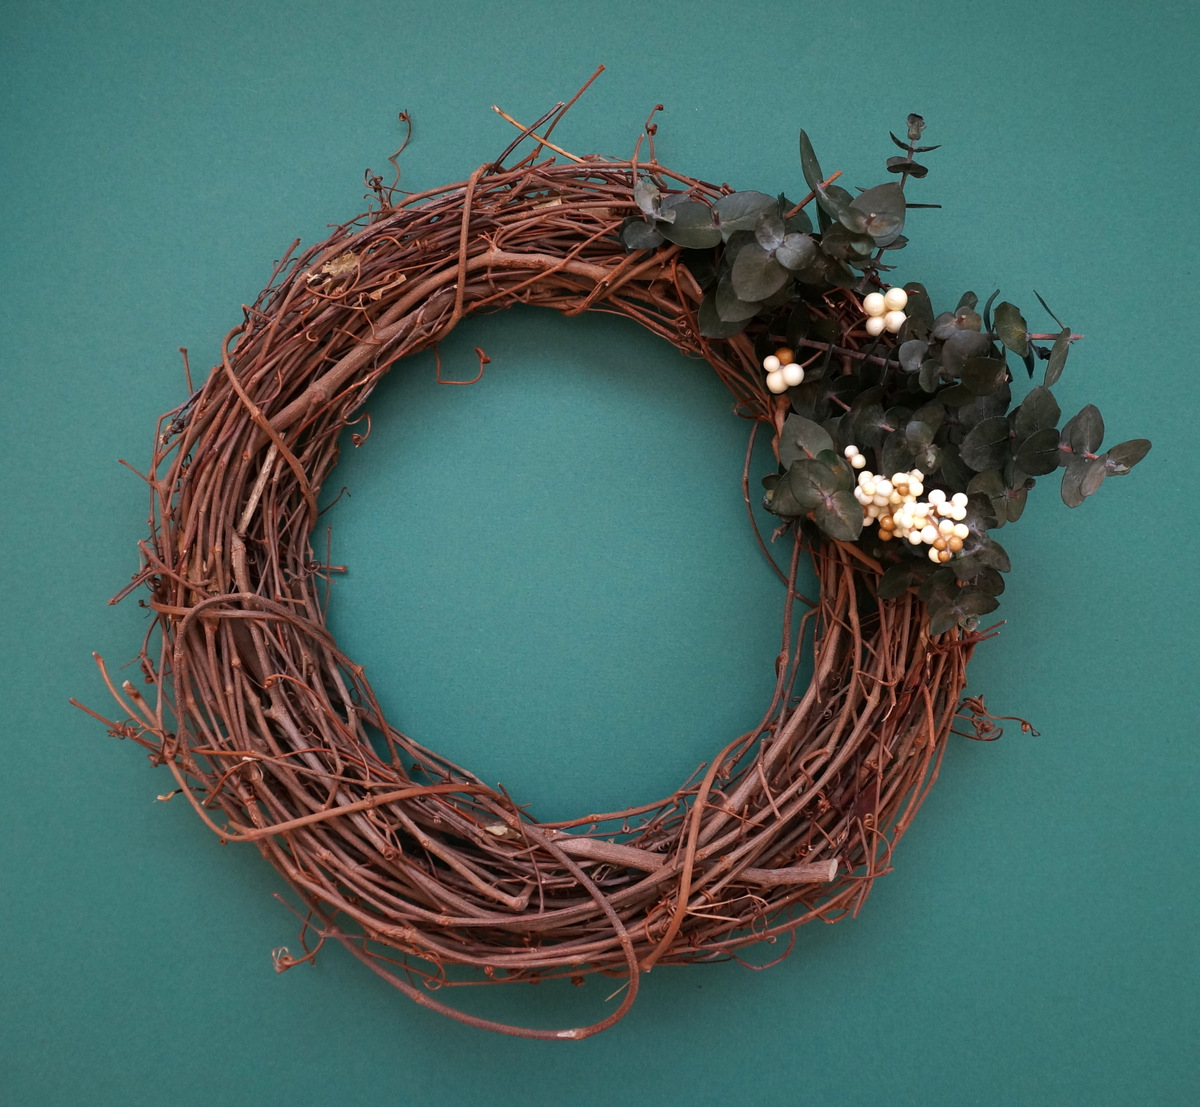 Begin decorating the top of the wreath